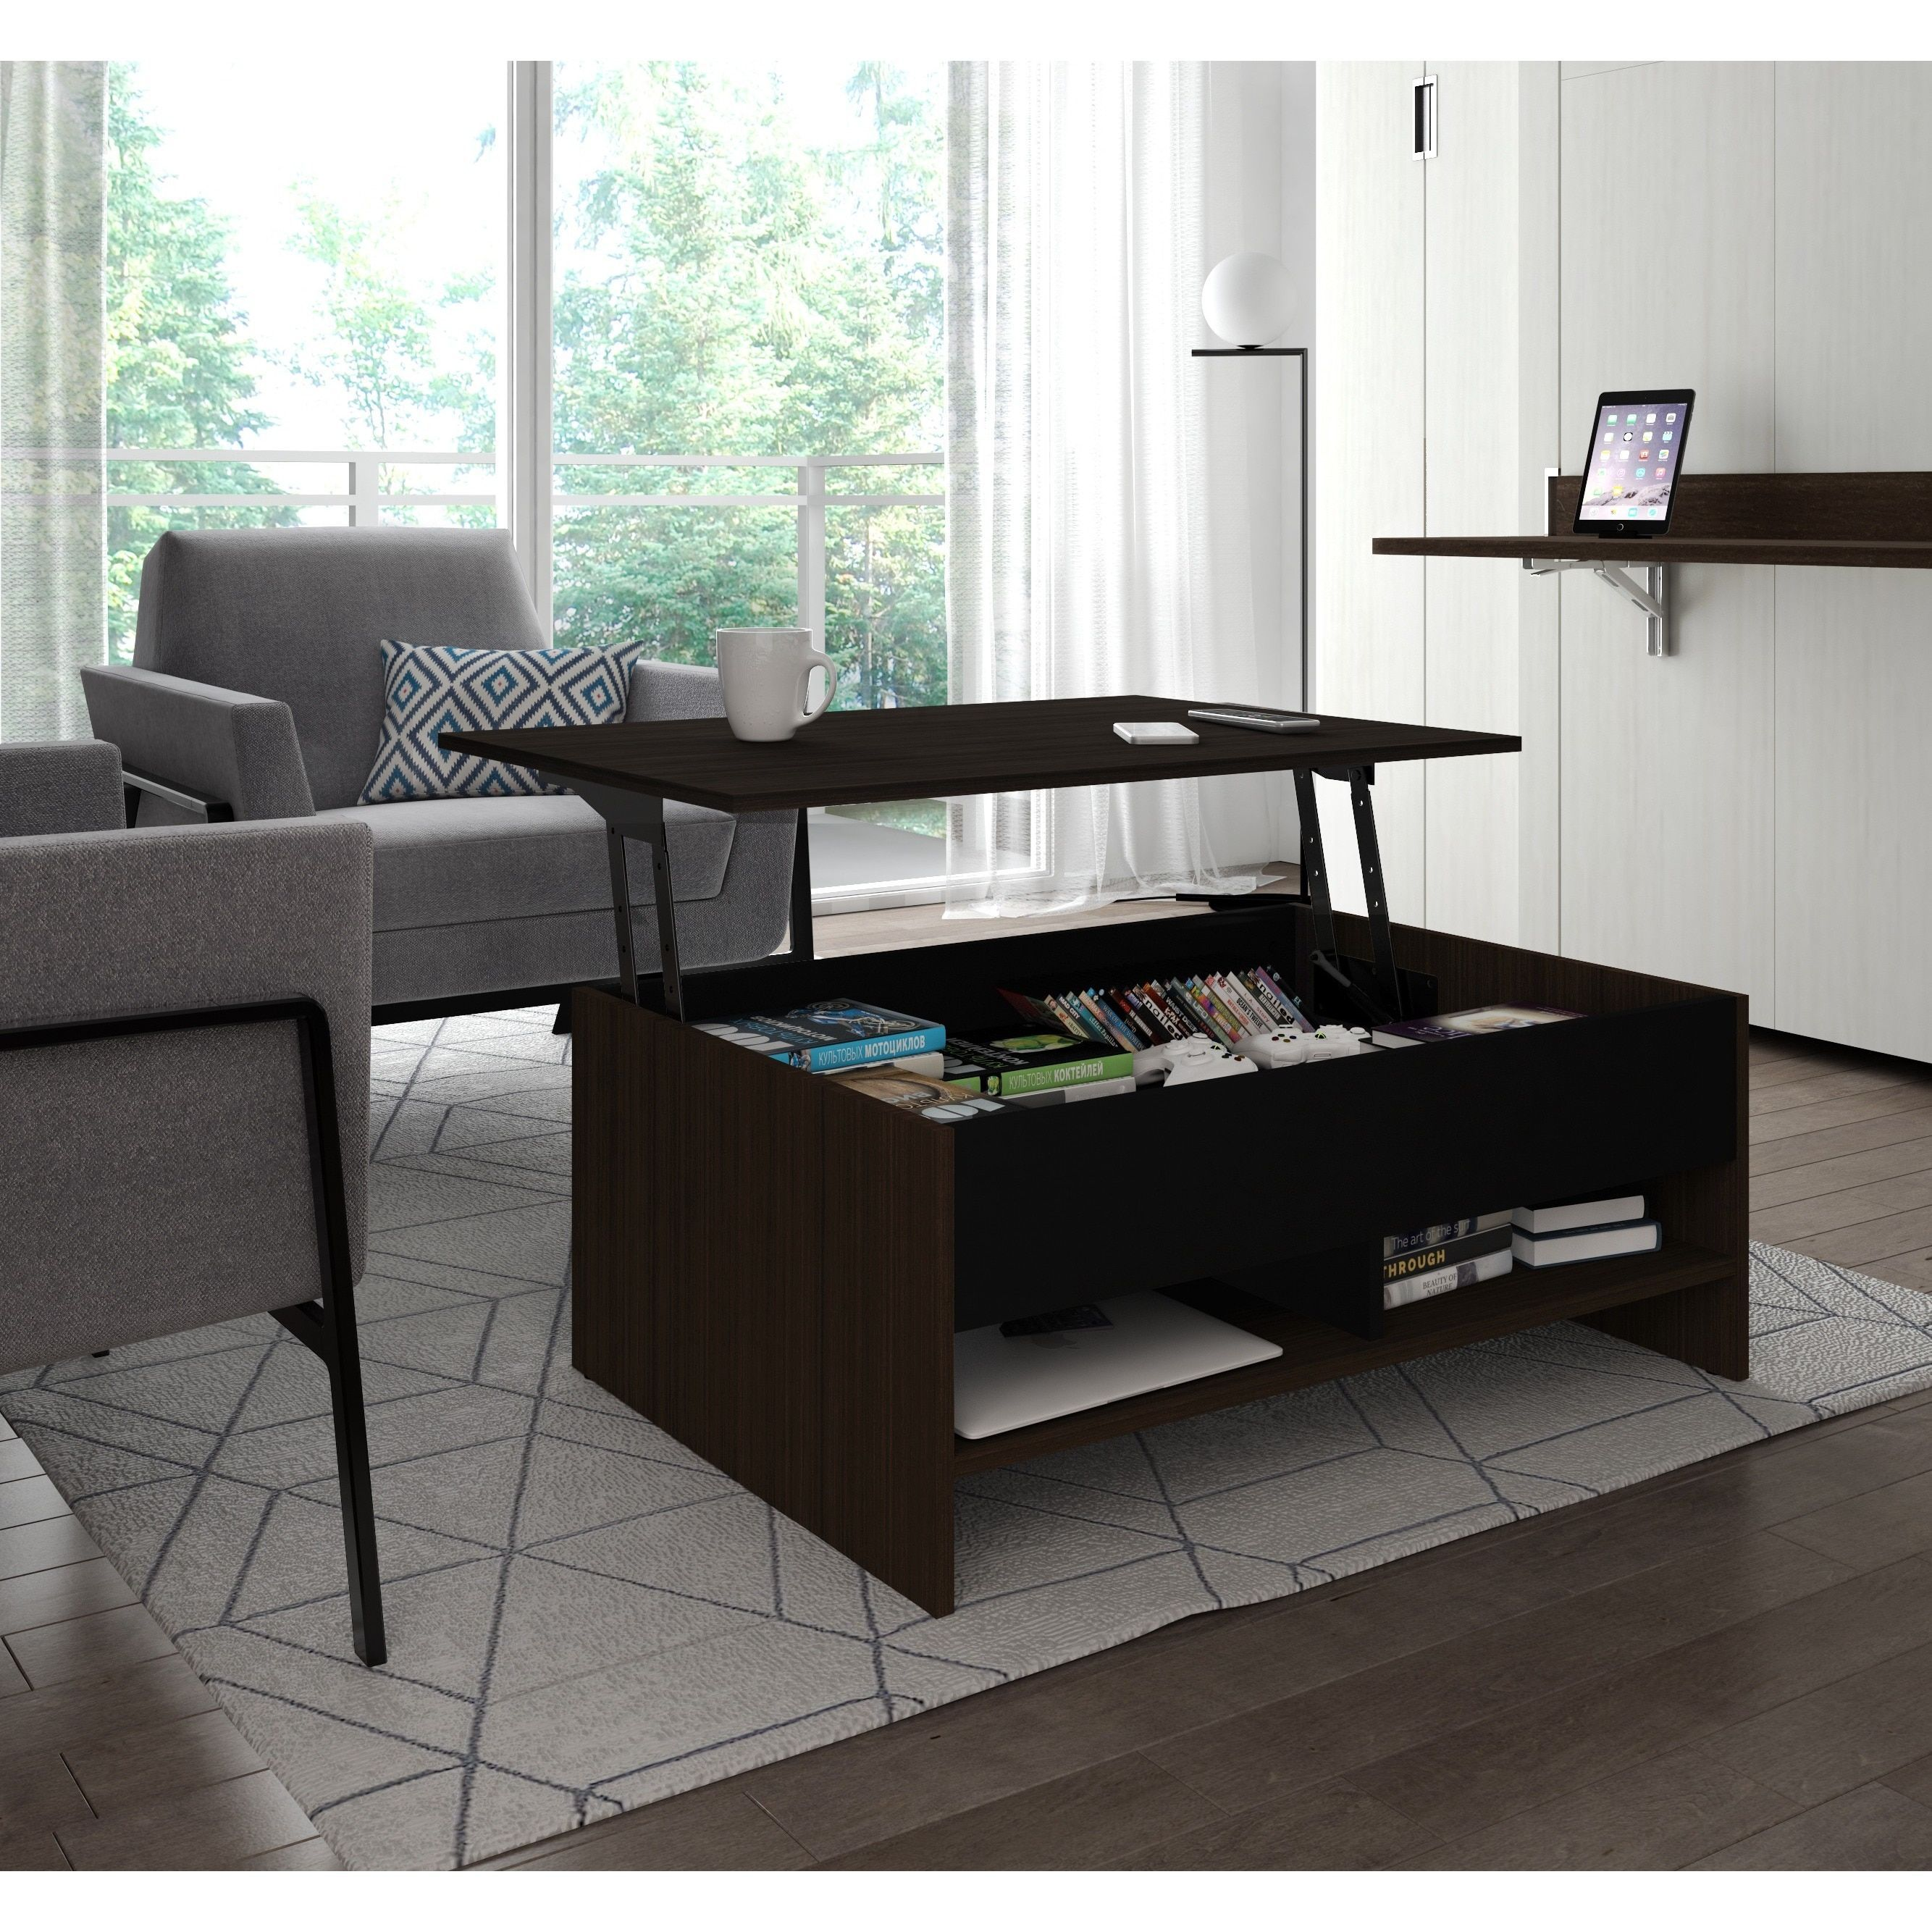 Bestar small space 37inch lifttop storage coffee table